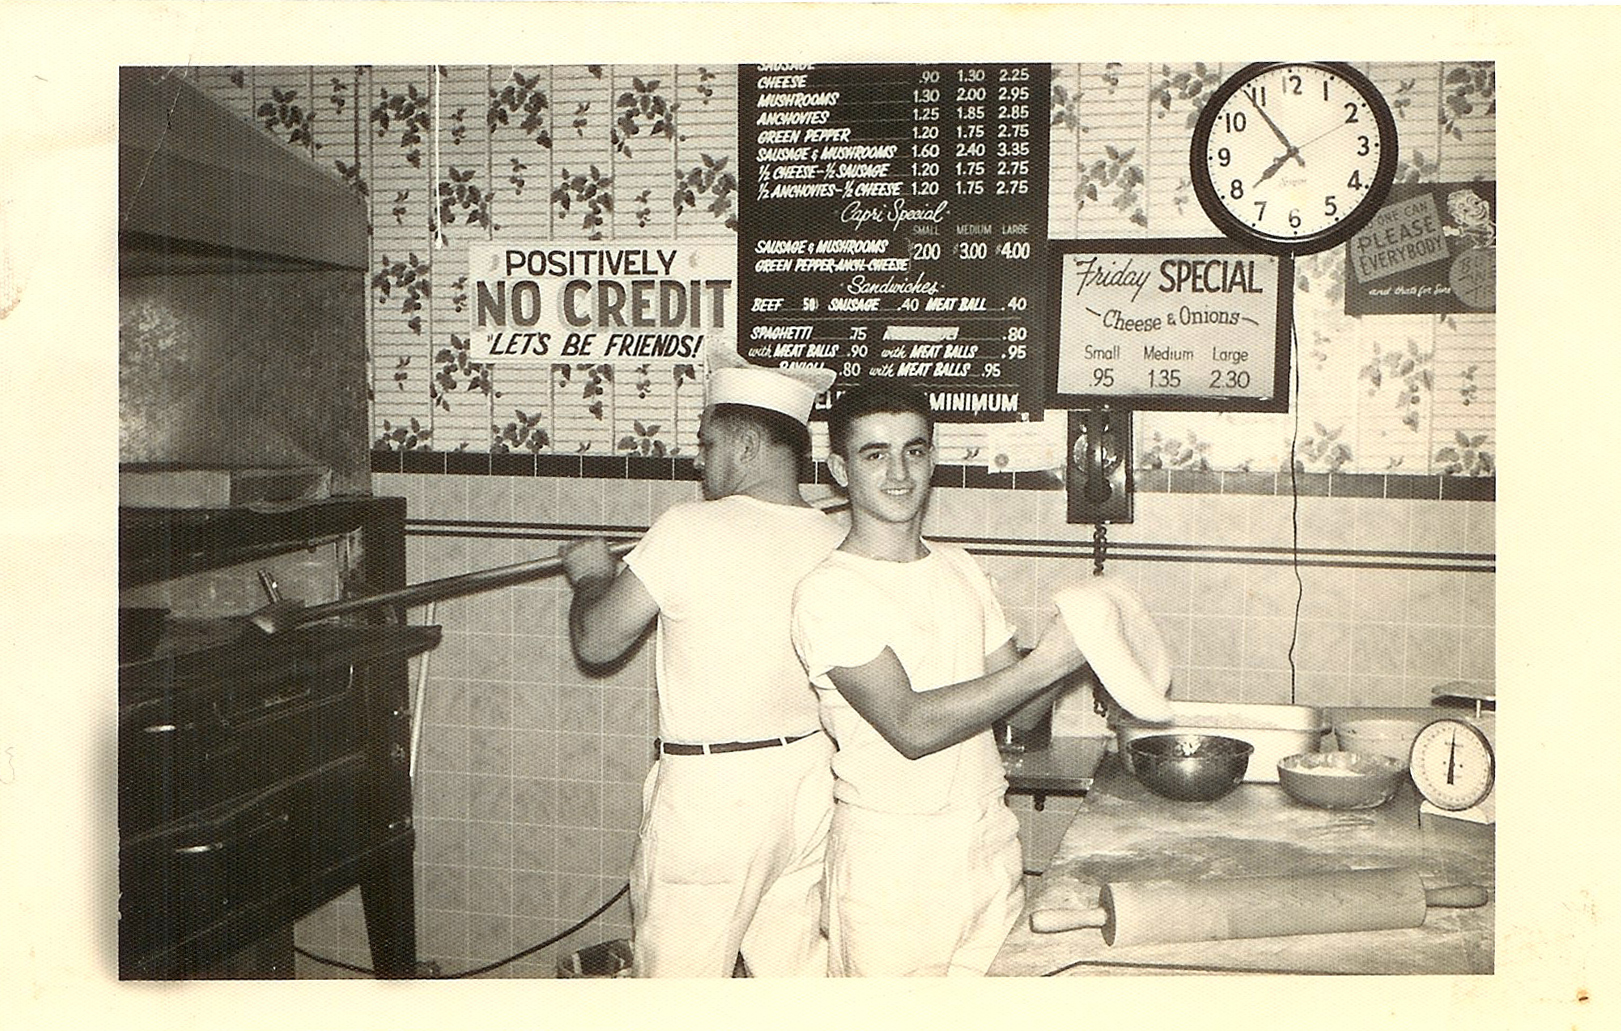 Tony Ciannamea (left) and an employee preparing pies during the early days.